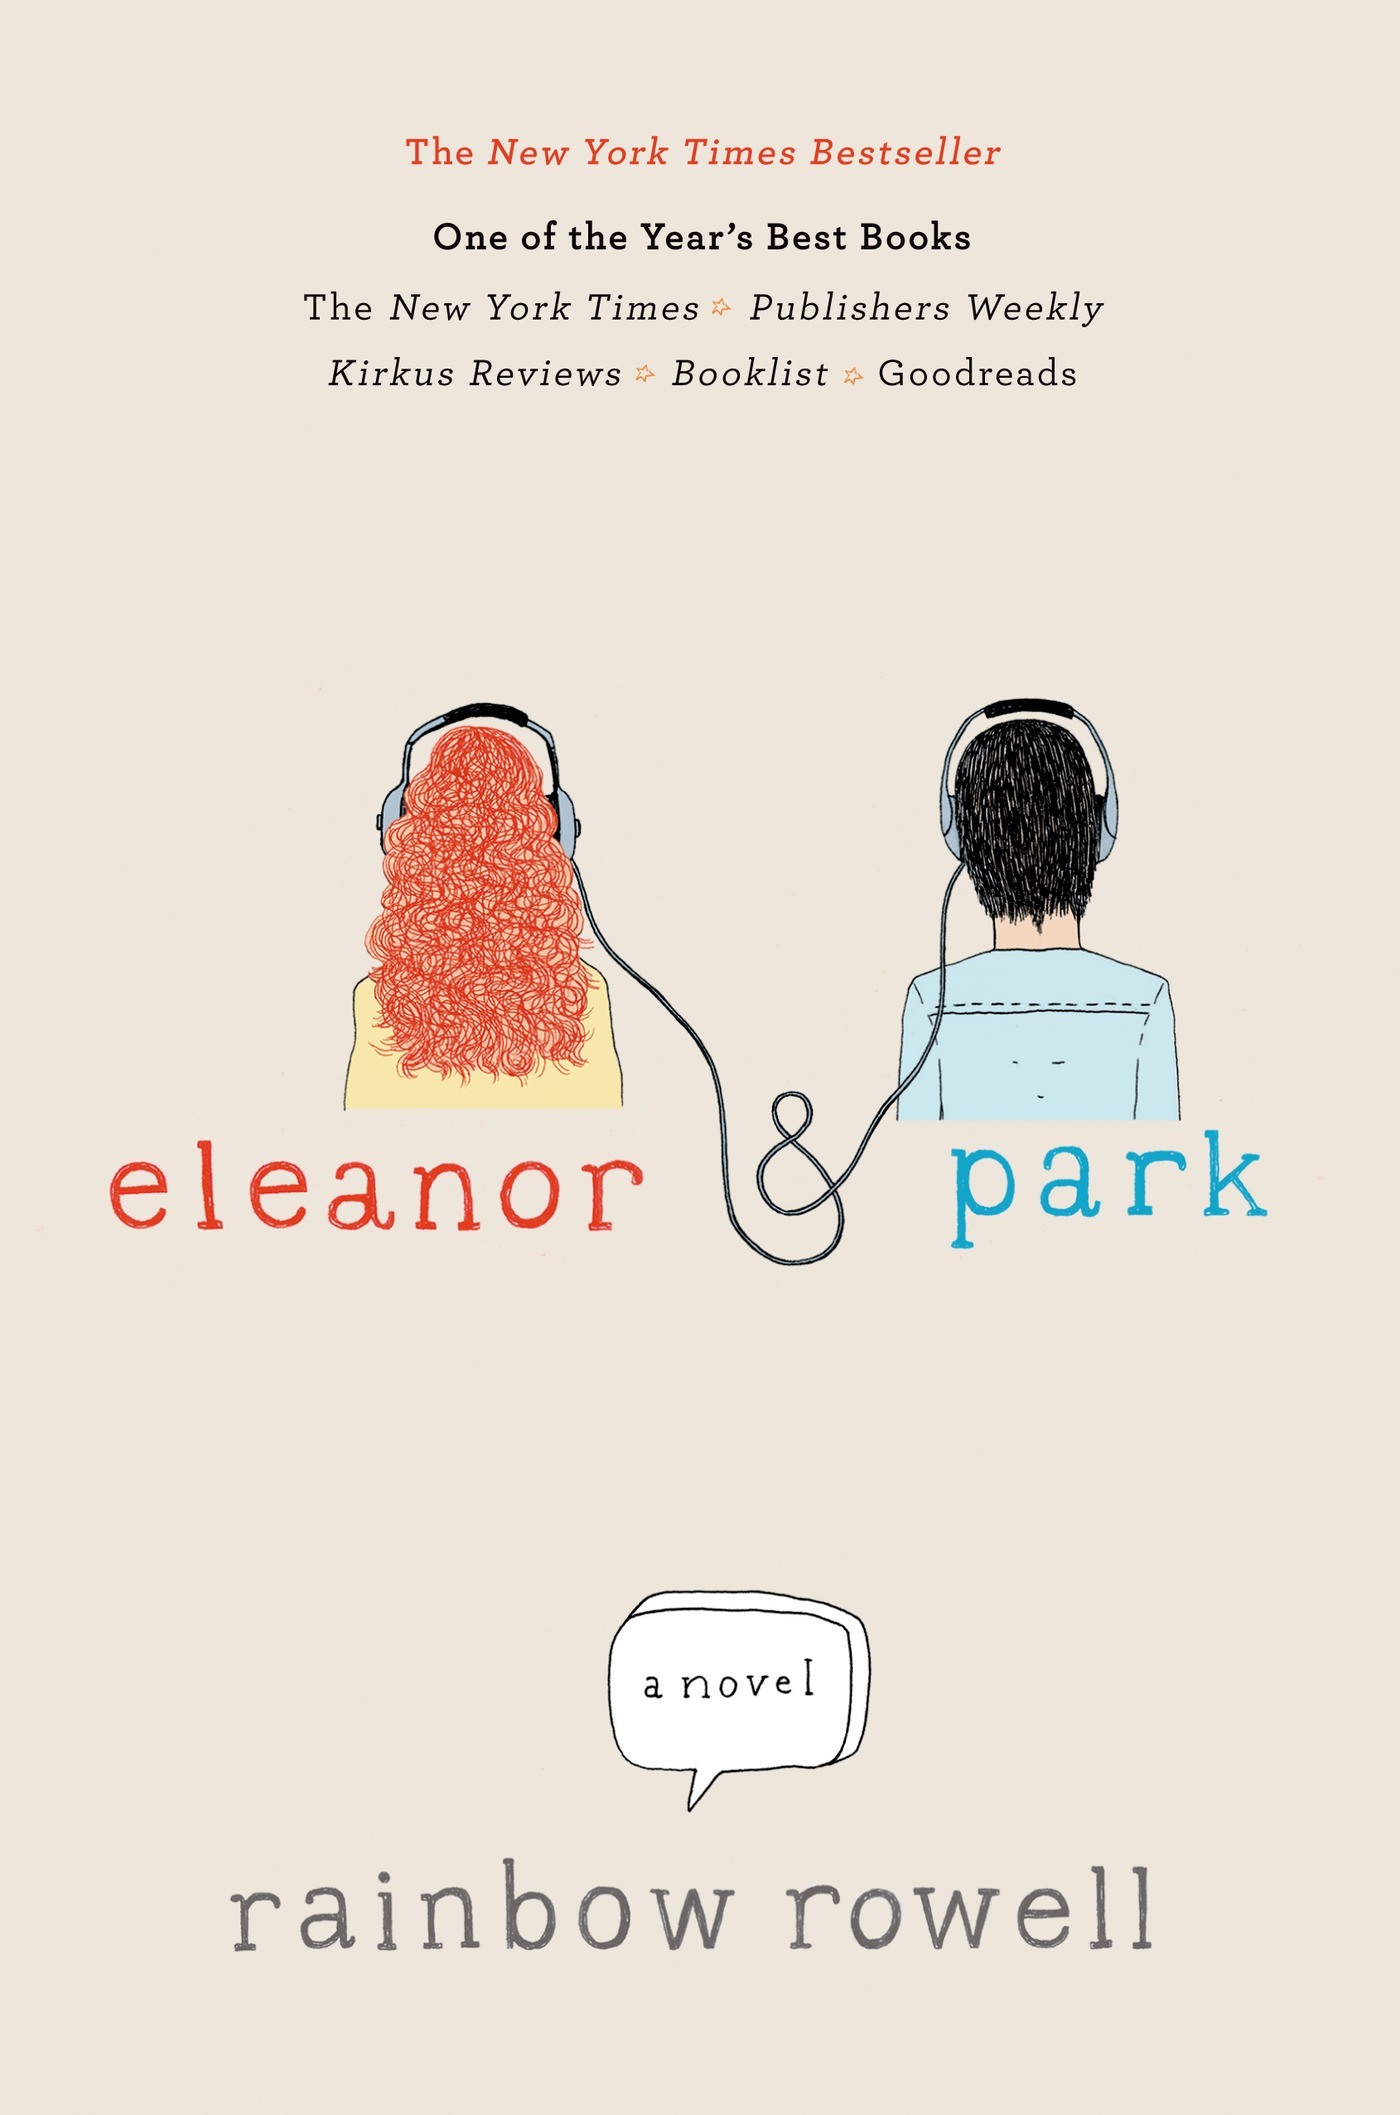 Eleanor &amp; Park